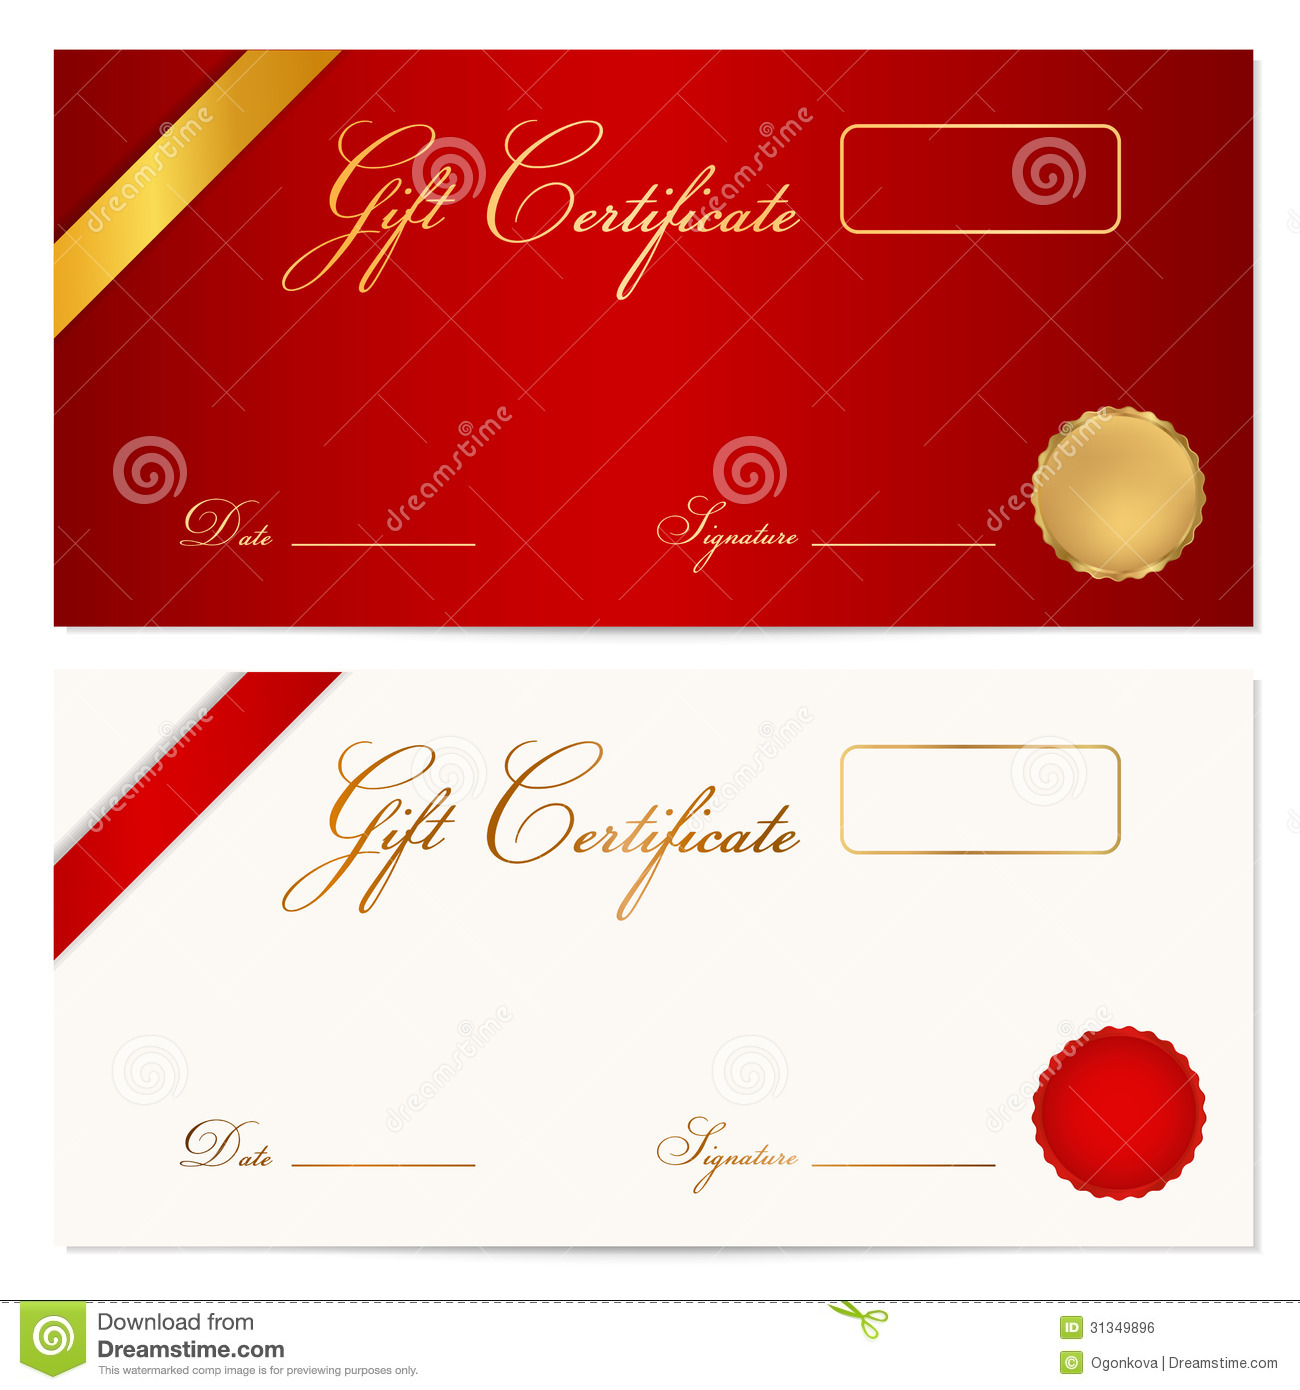 No Credit Check Credit Cards >> Gift Certificate (Voucher) Template. Wax Seal Royalty Free Stock Image - Image: 31349896